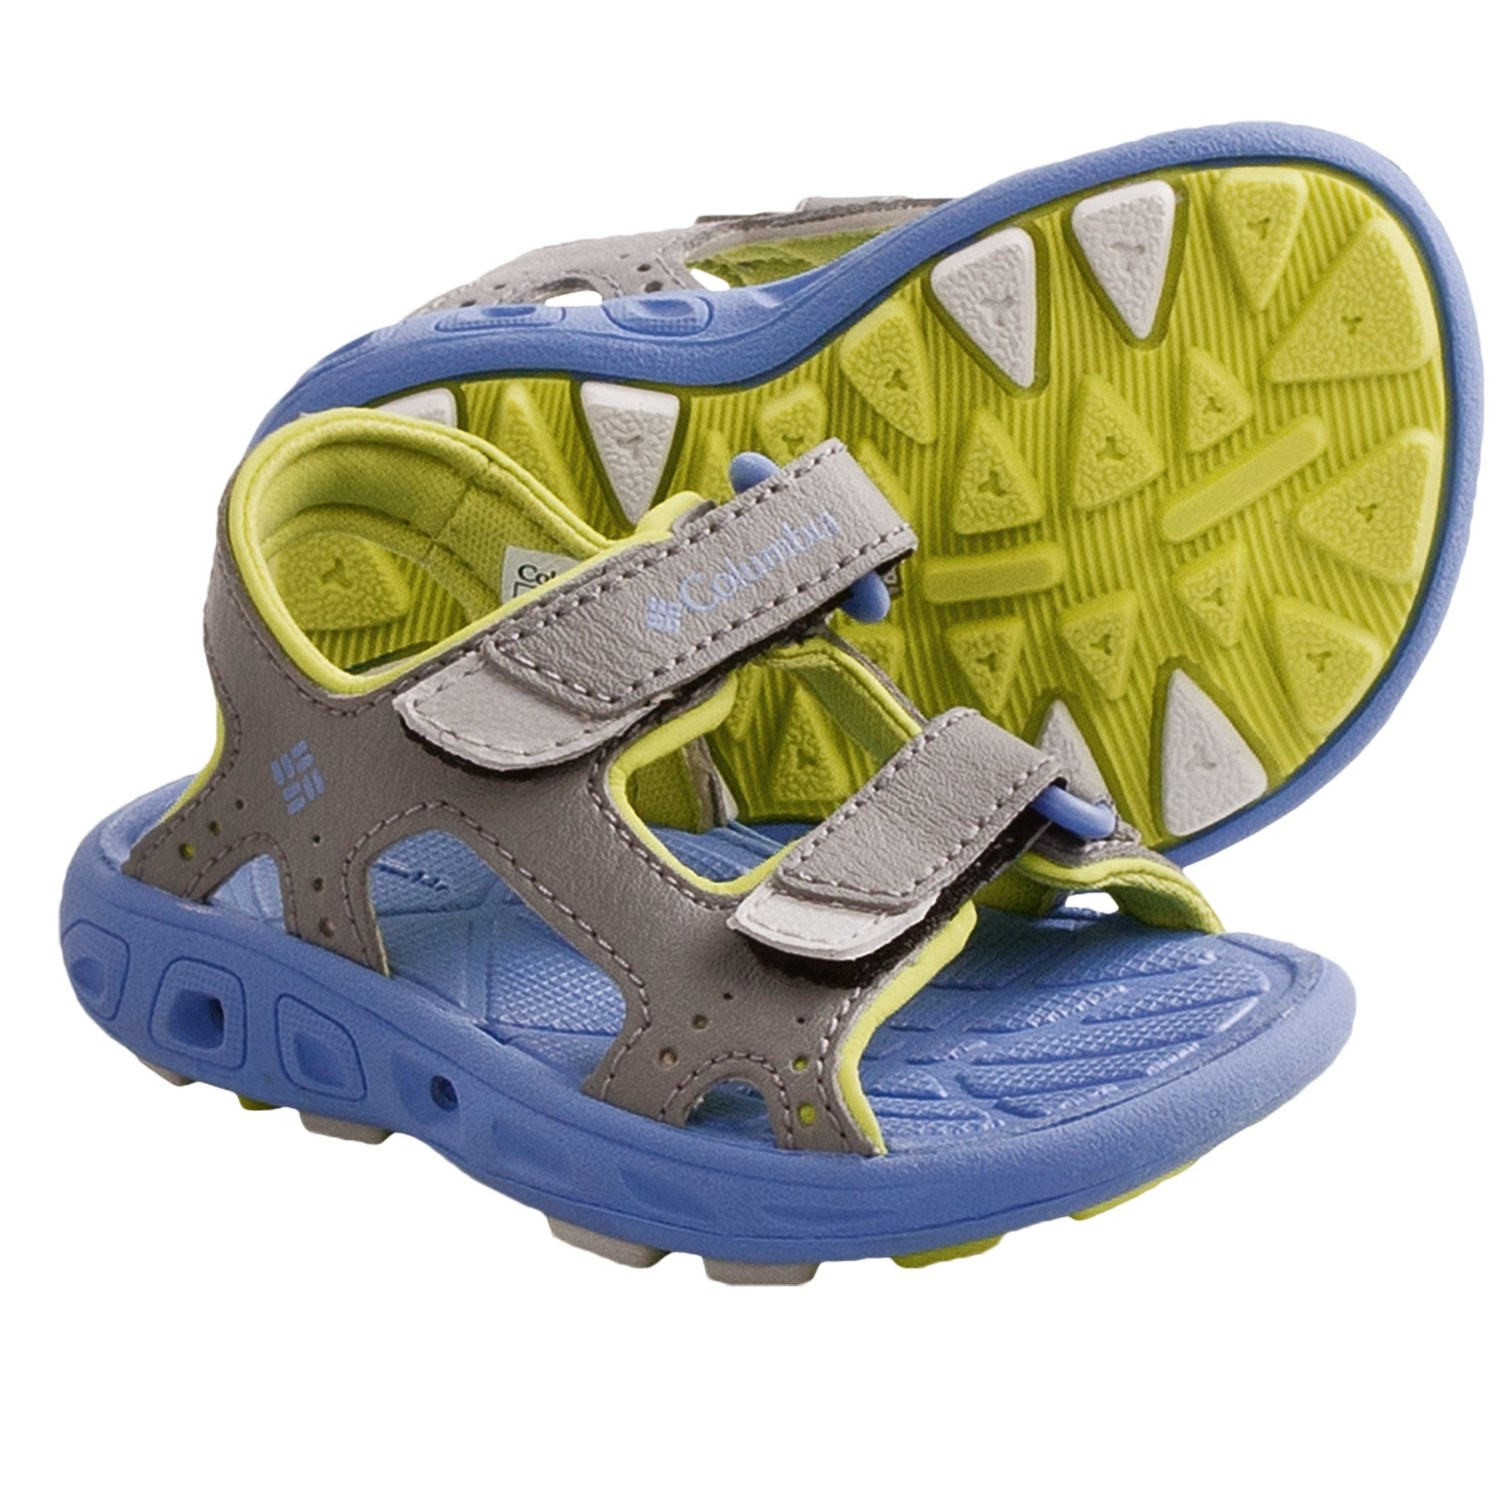 Columbia Sportswear Techsun Vent Sandals For Kids 7809n